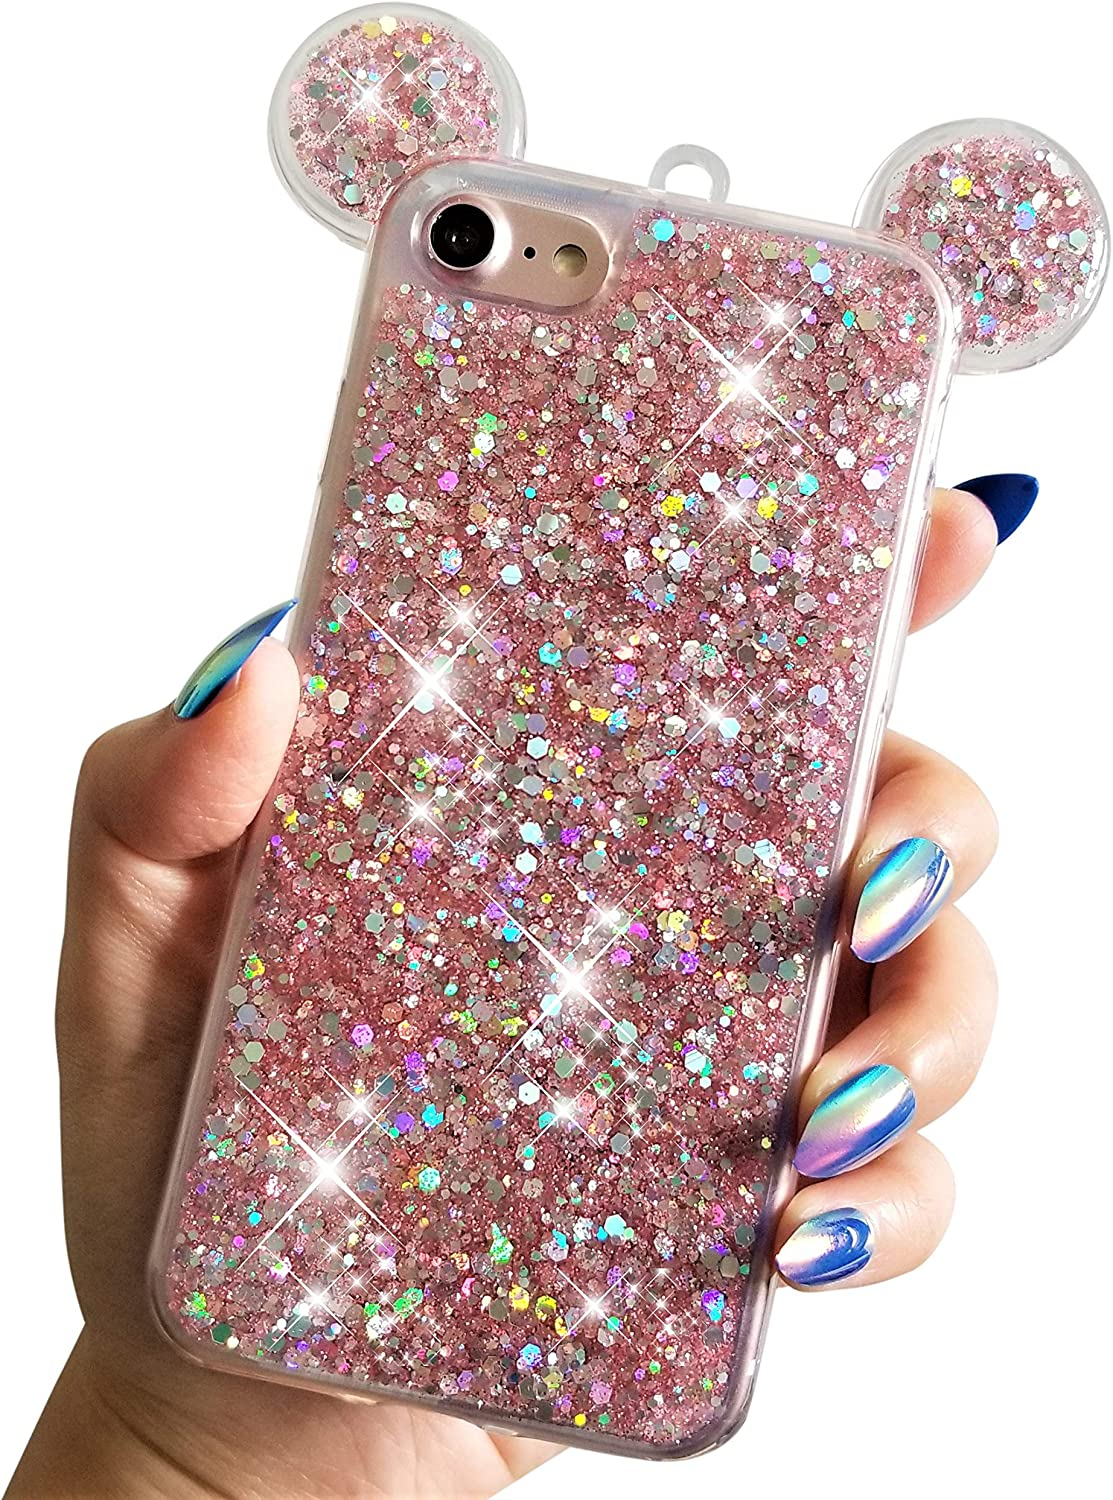 """NAMA for iPhone 7/8 4.7"""" iPhone SE (2020) 2nd Gen Soft TPU Holographic Dots Minnie Mickey Ears Shiny Glitter Disney Back Cover Case (Pink)"""